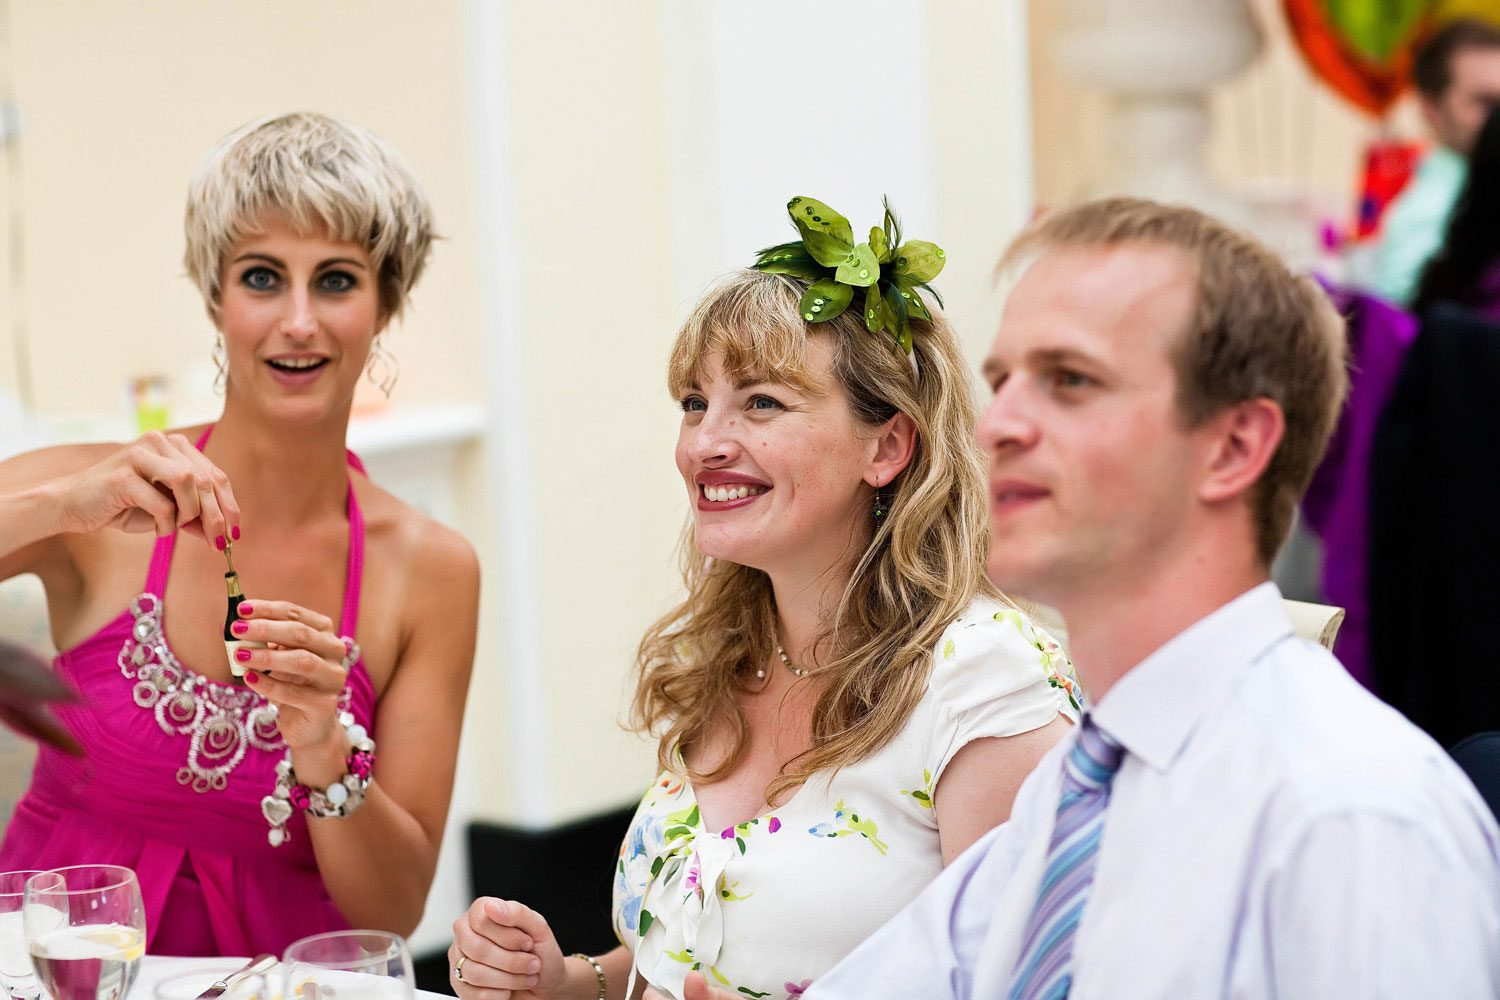 wedding guest with flowers in hair